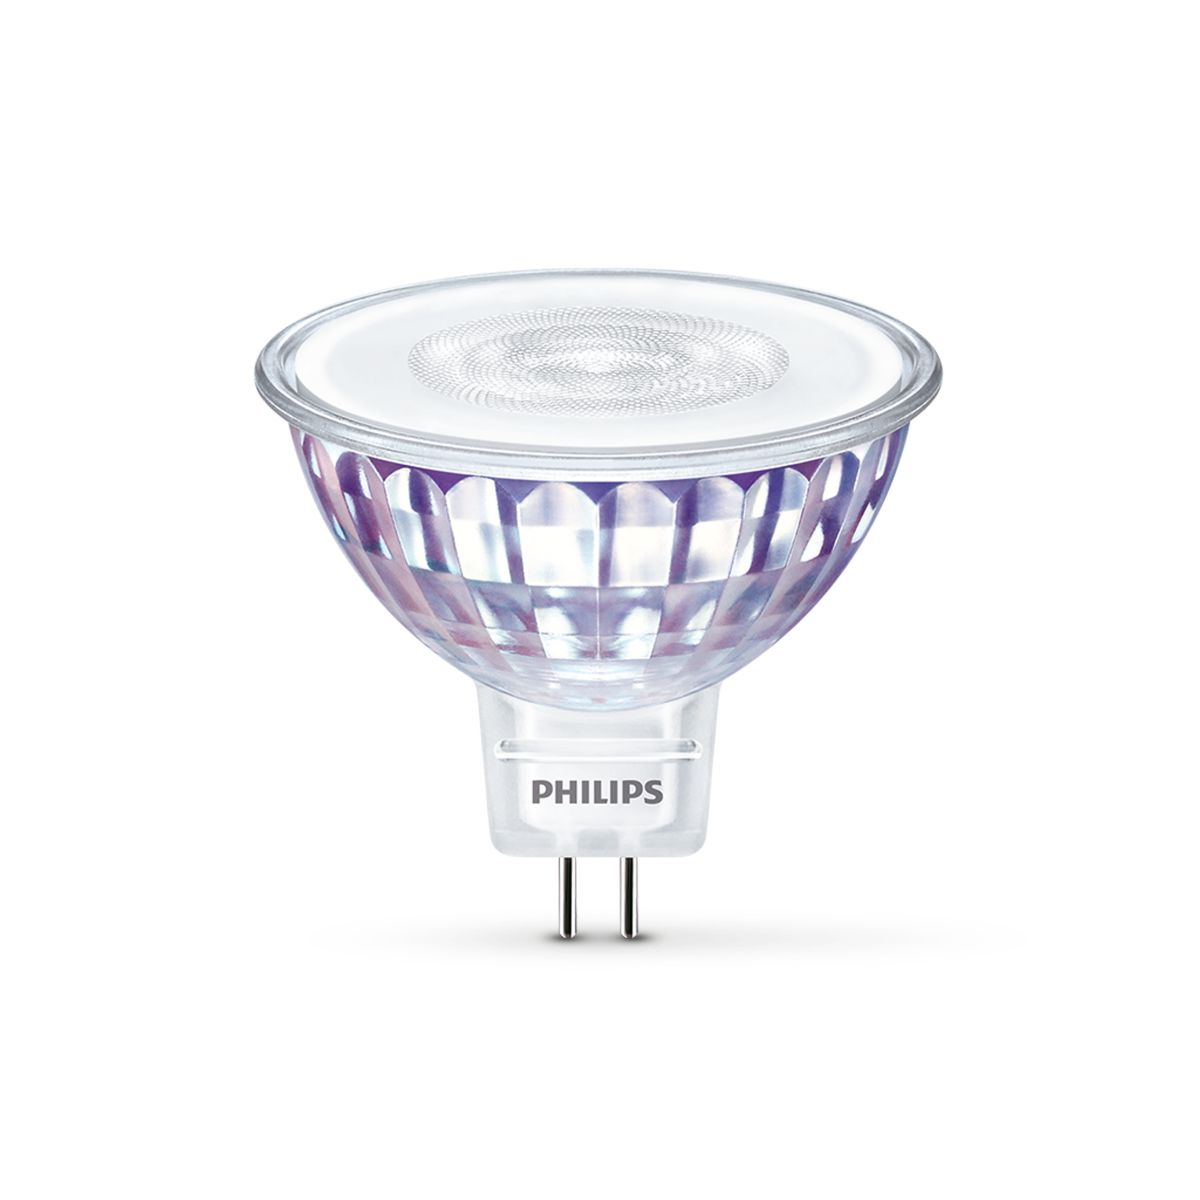 Catalogo Lamparas Philips Catálogo De Productos Philips Lighting